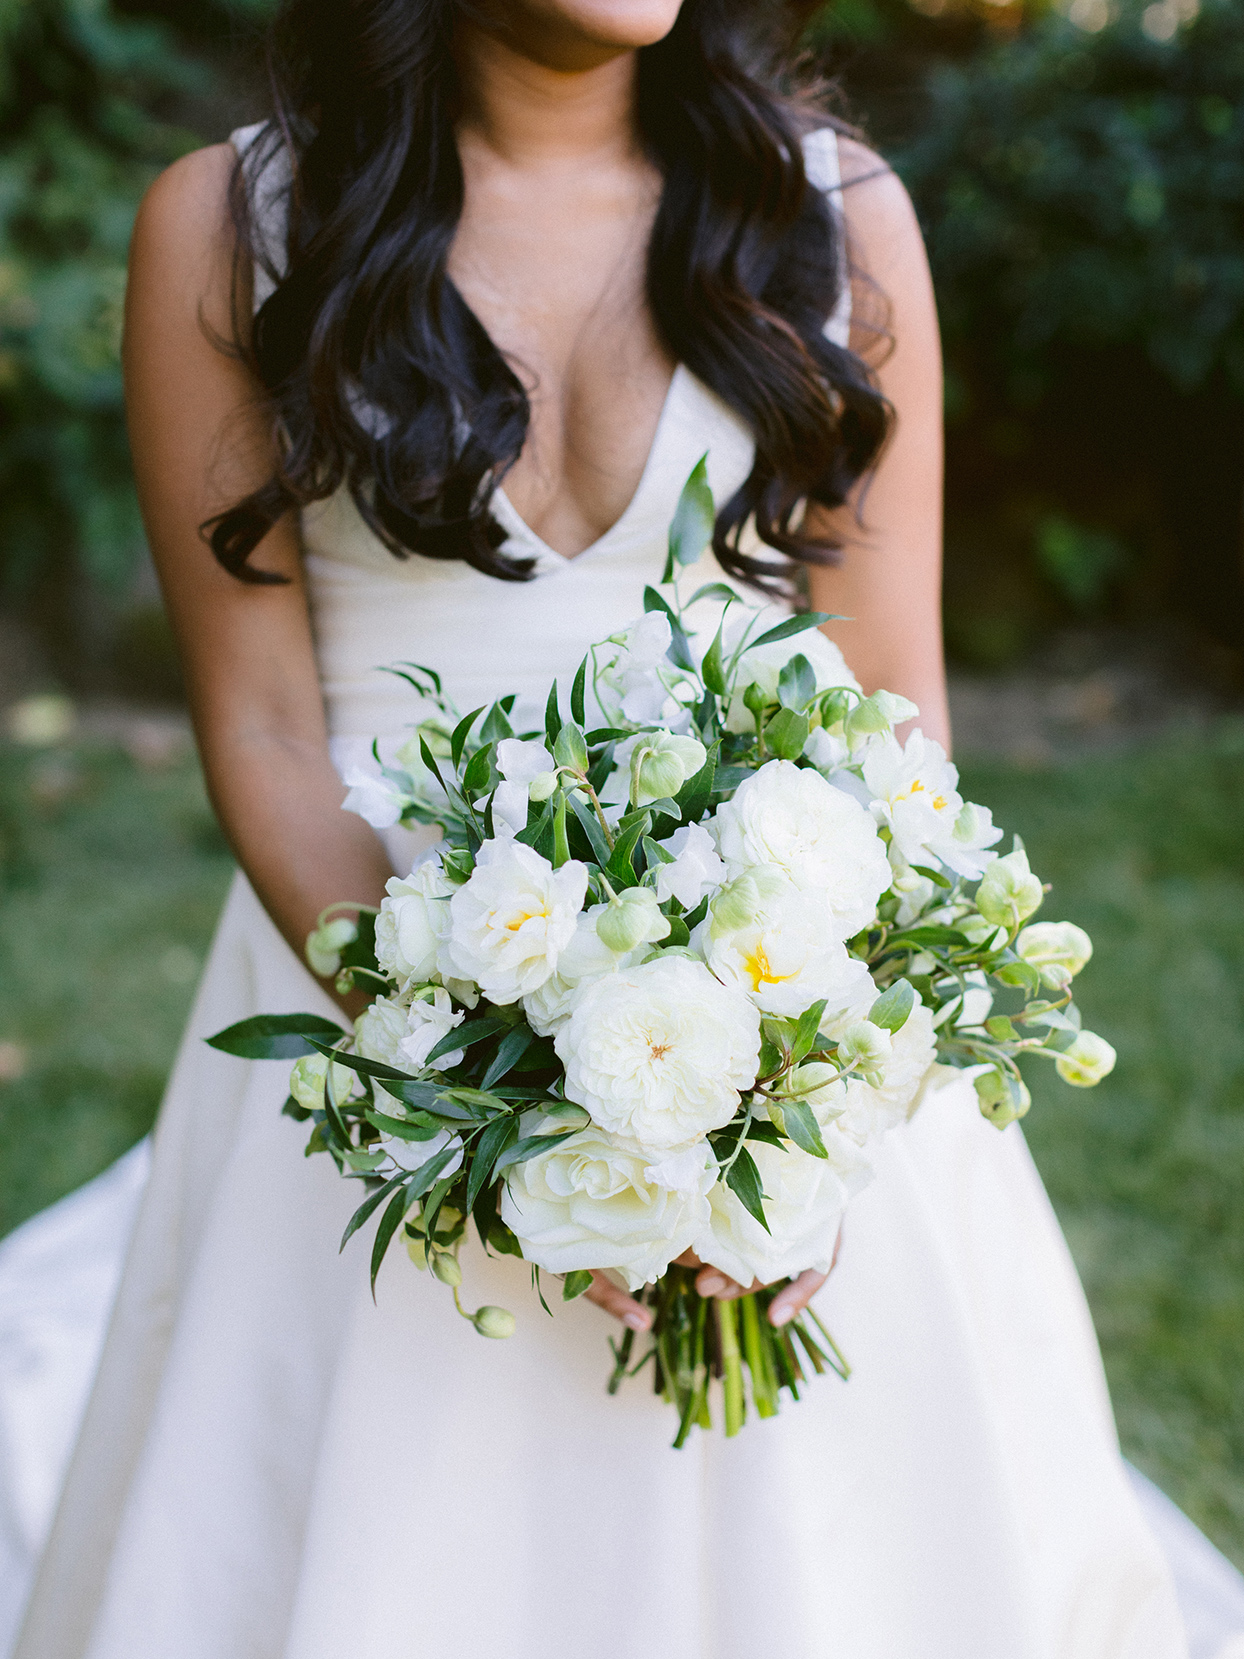 Bride in Silk Faille Vera Wang wedding dress and bouquet of white and cream flowers